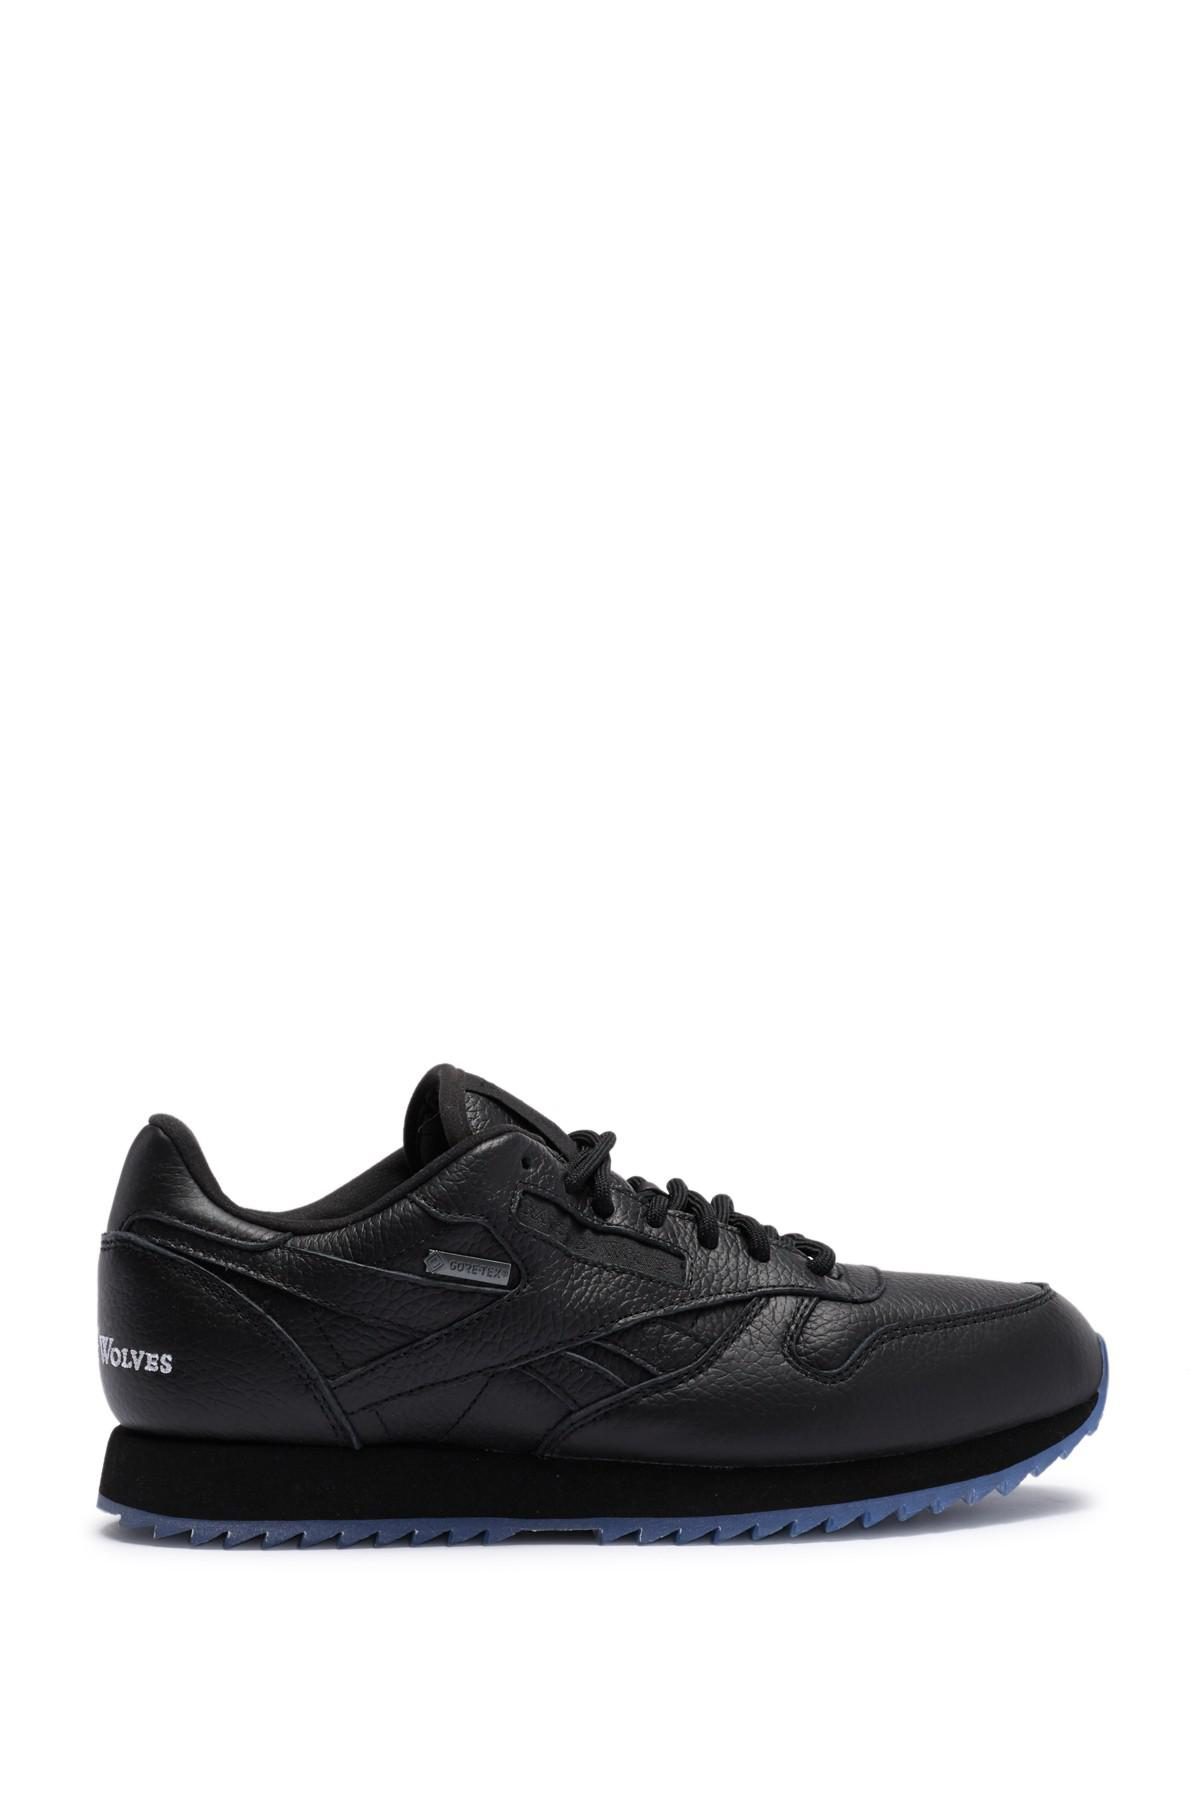 ce25351b221b7 Lyst - Reebok Classic Leather Ripple Gore-tex By Wolves Waterproof ...